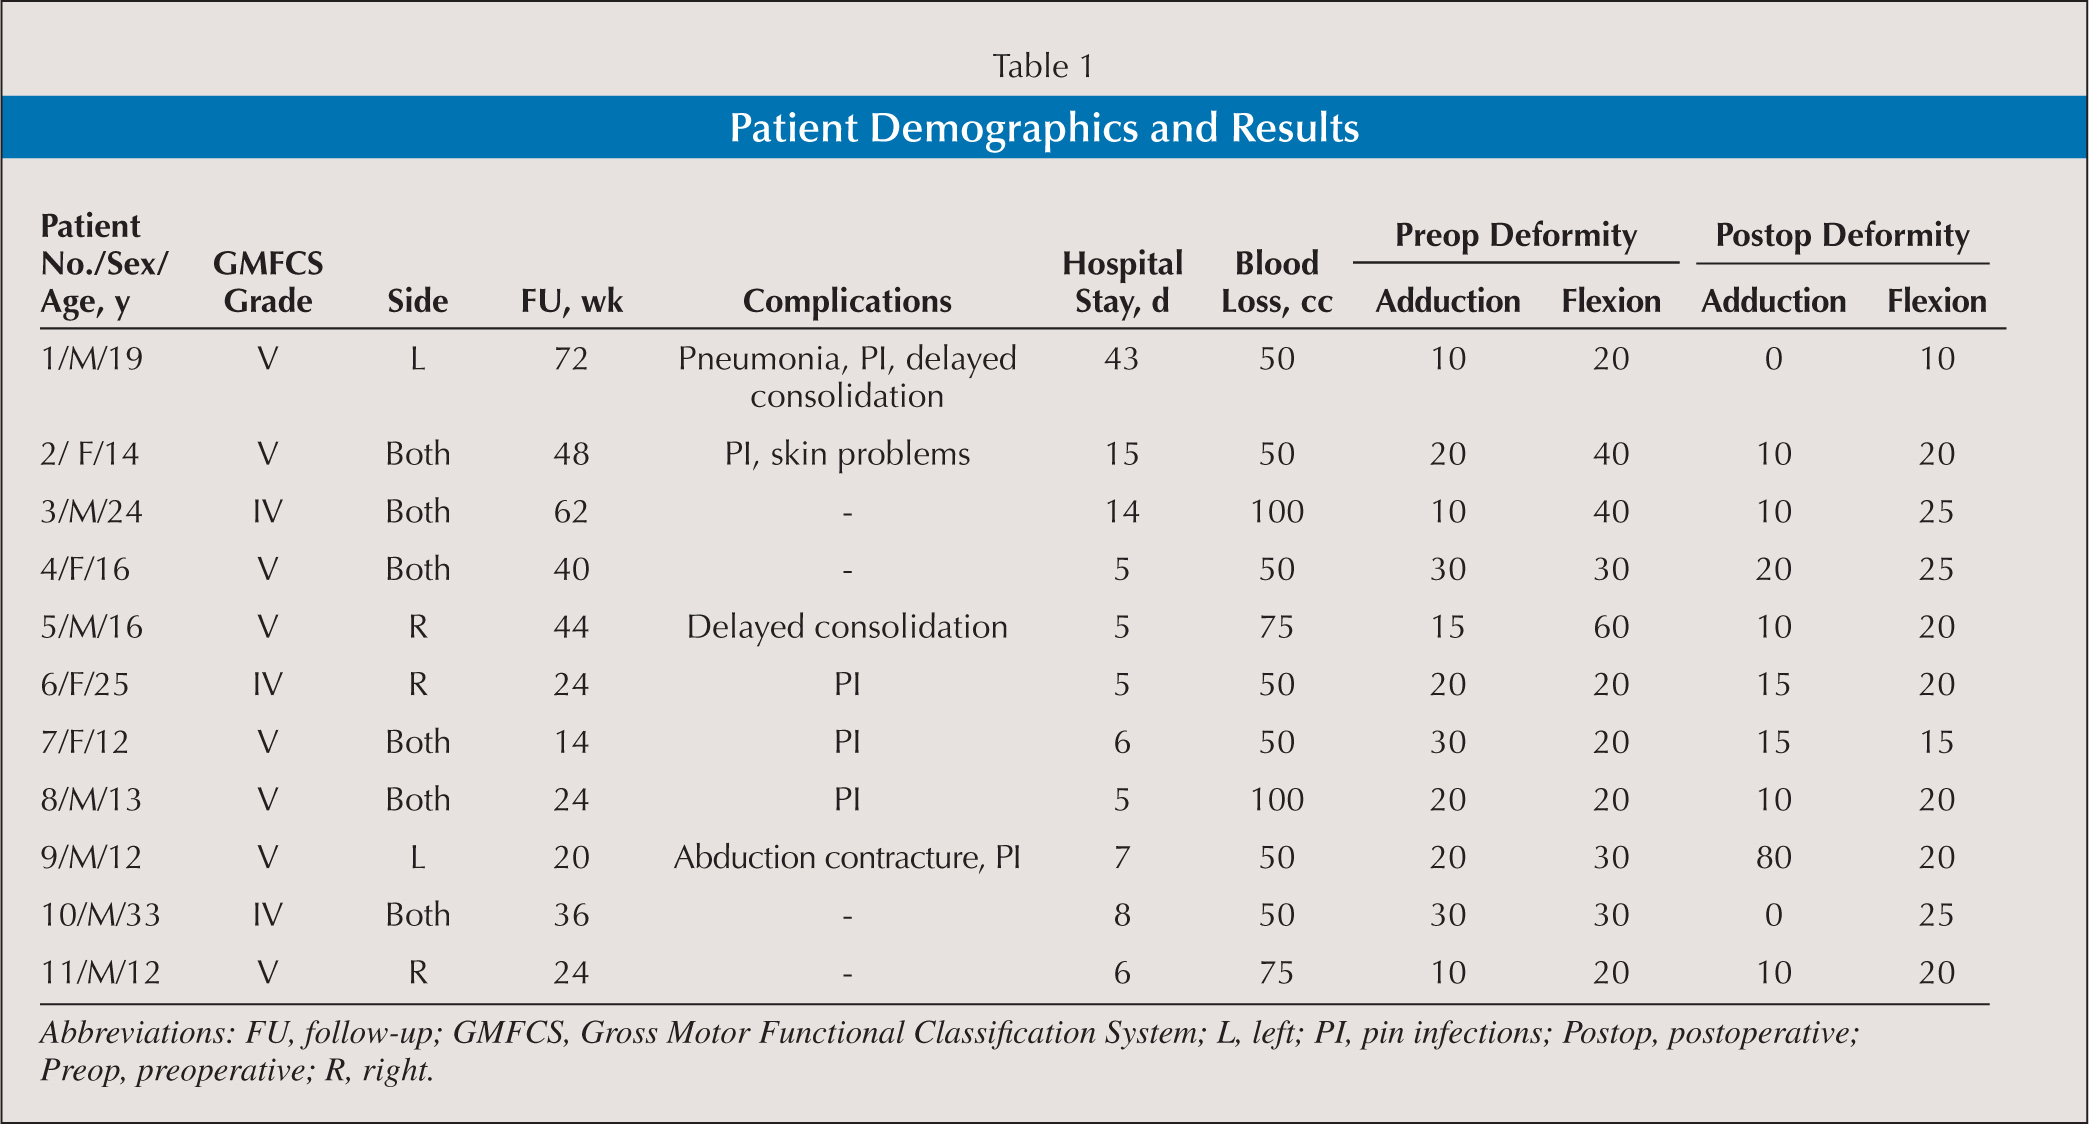 Patient Demographics and Results